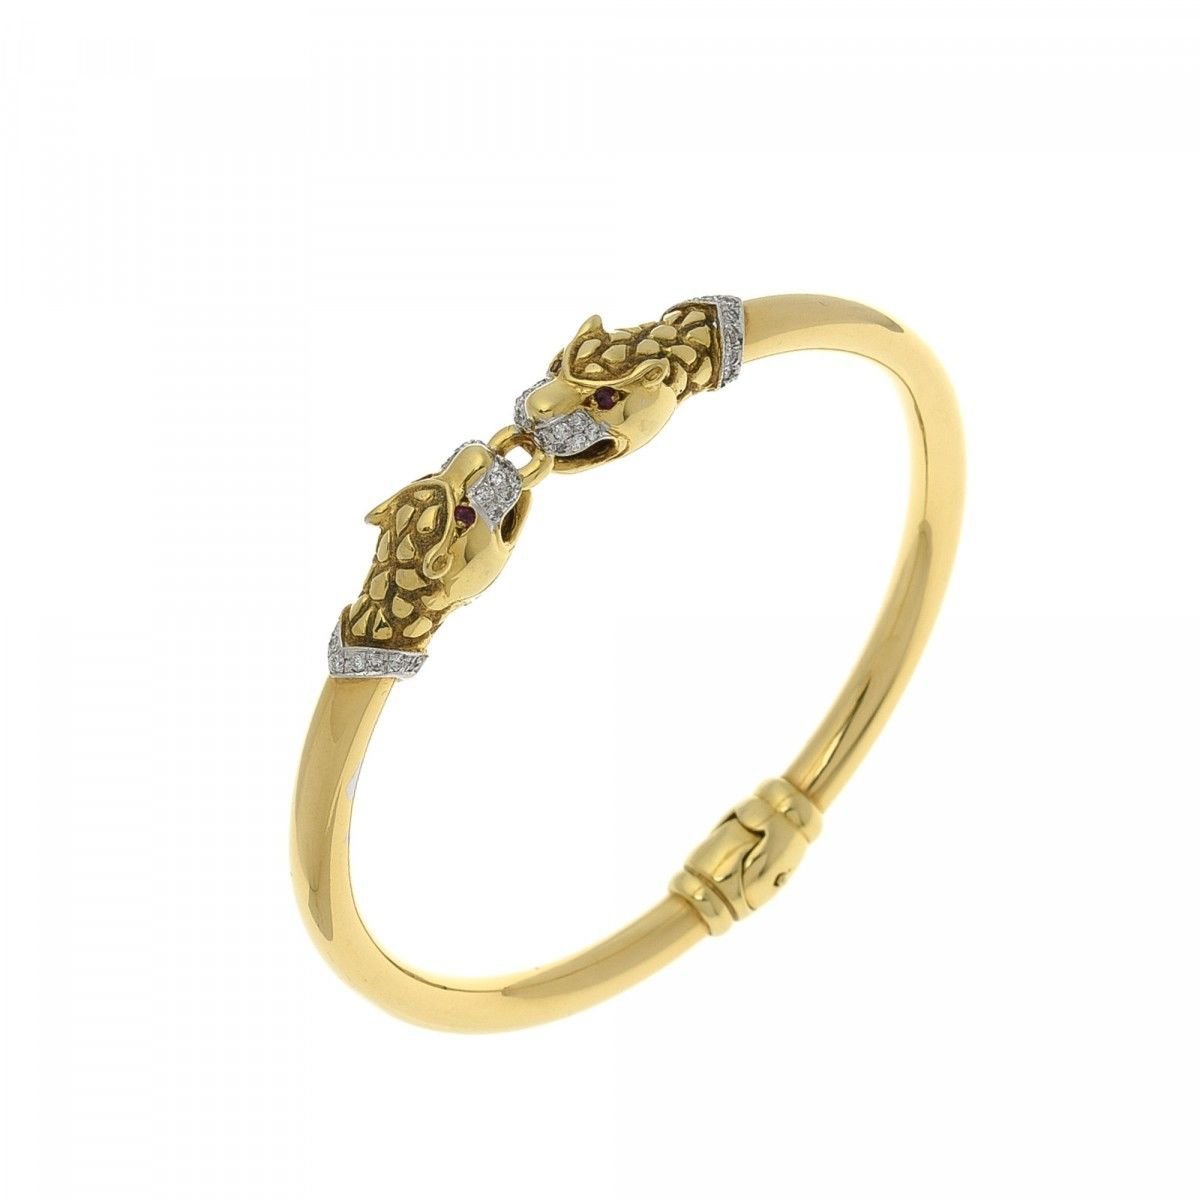 br bracelet bianco panterina products gold enameled mini jewel italian panther sirmione inga